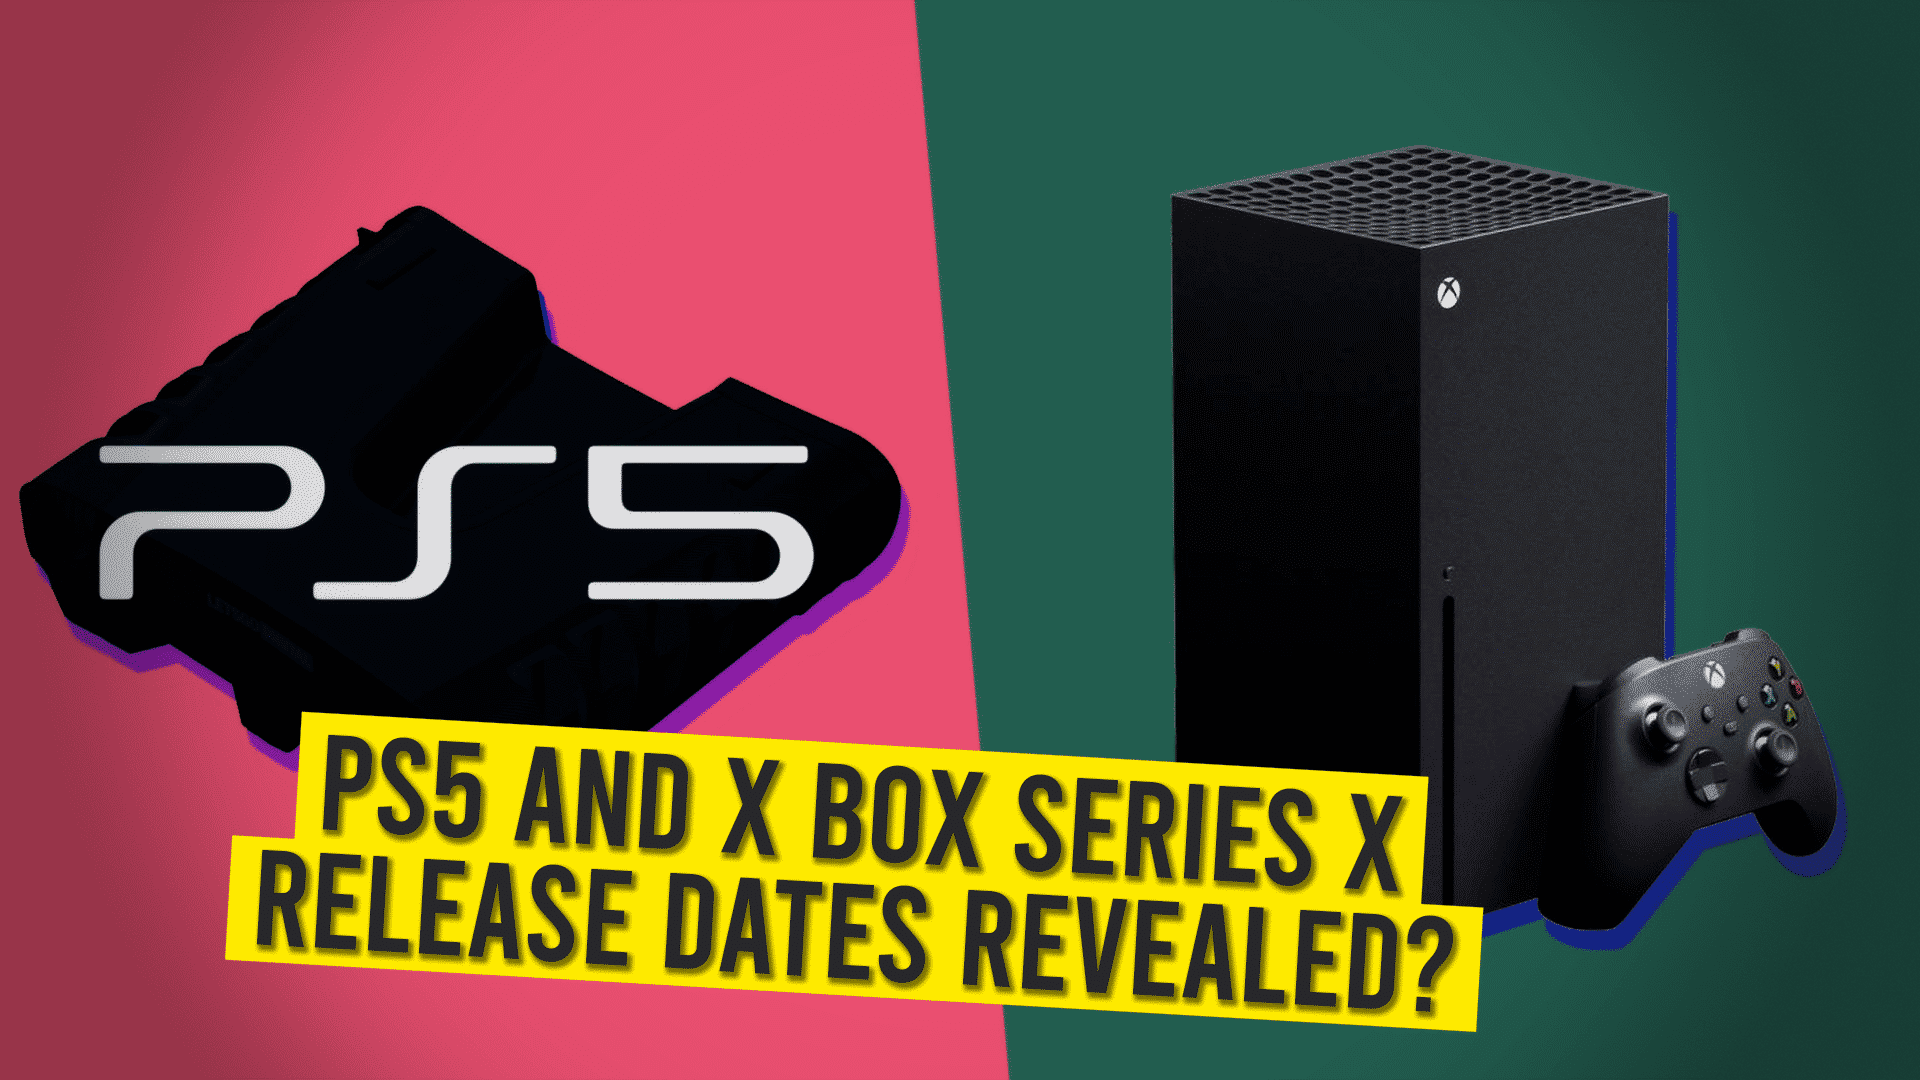 PS5 And X Box Series X Release Dates Revealed